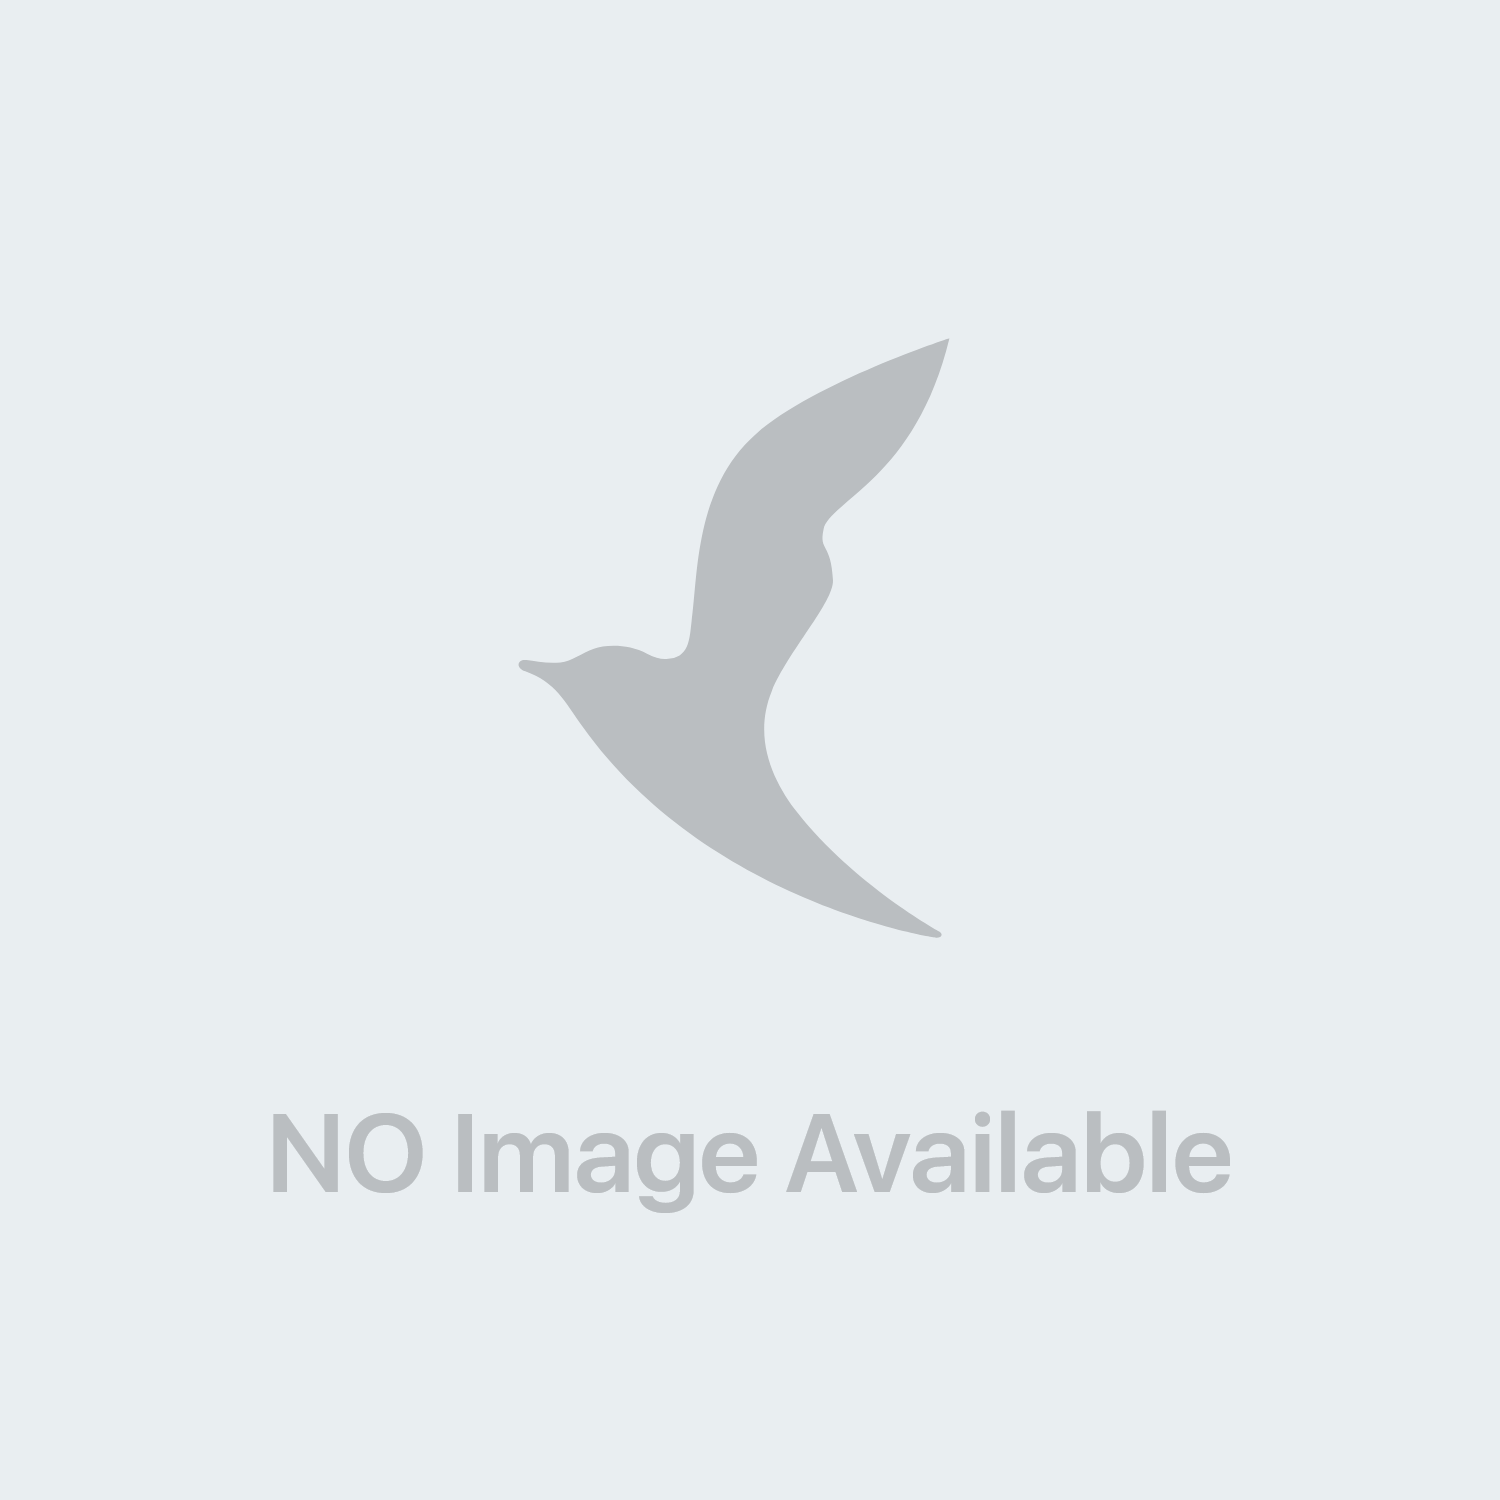 Ducray Keracnyl Repair Crema Antiacne 50 Ml